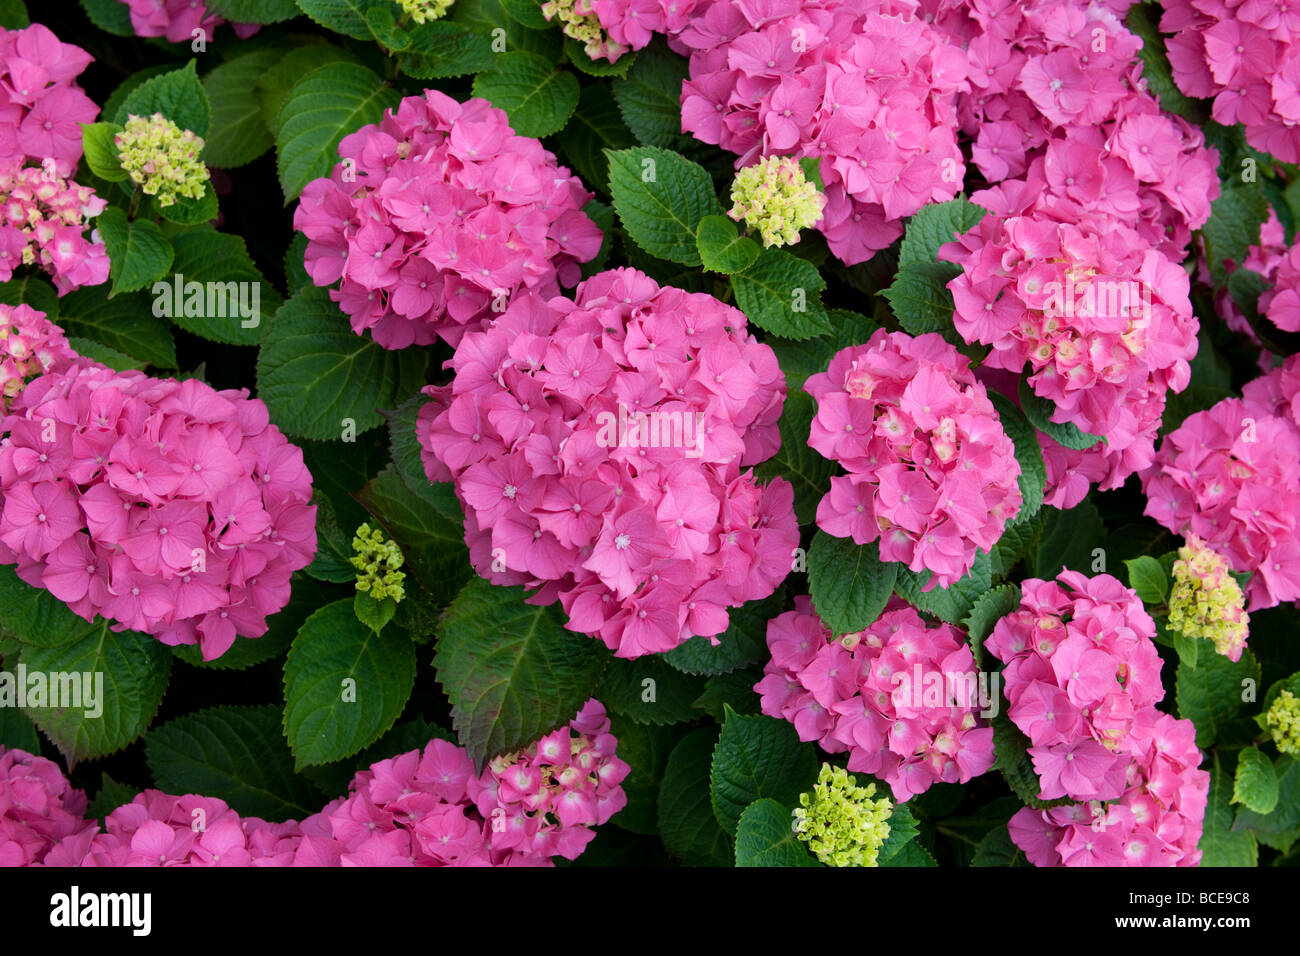 Pink Hydrangea shrub in full bloom - Stock Image